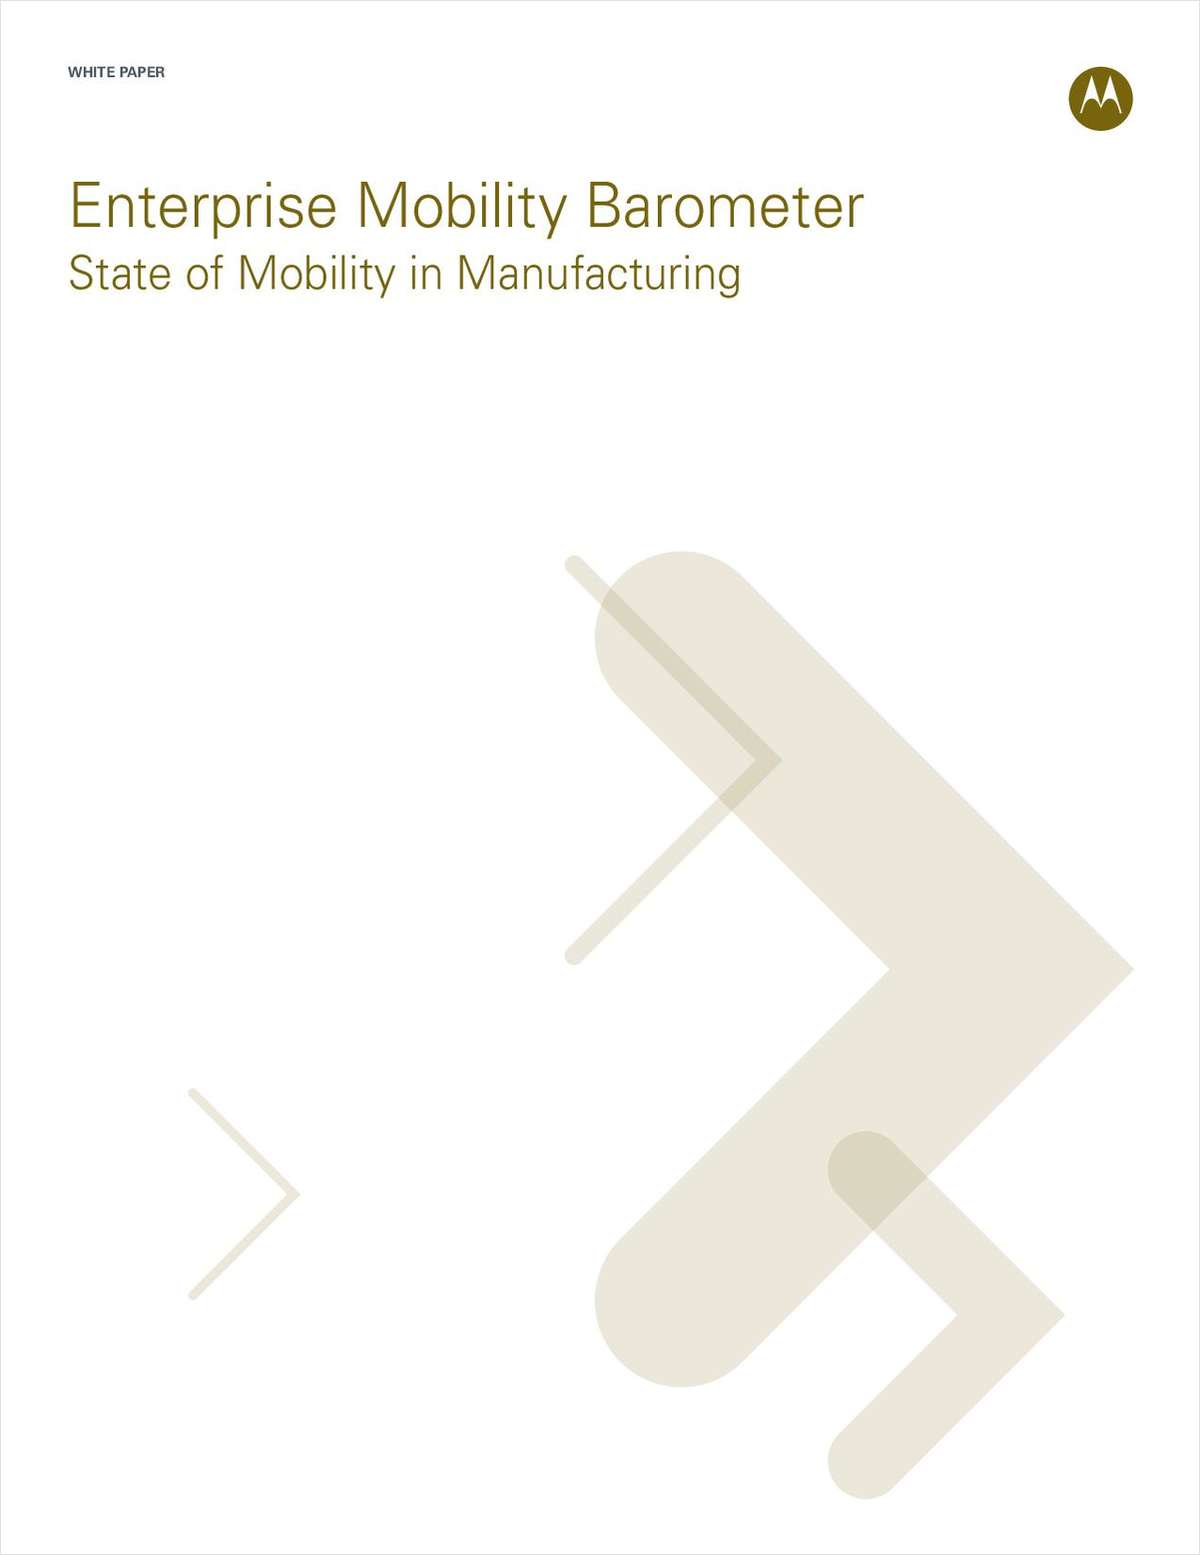 Enterprise Mobility Barometer State of Mobility in Manufacturing